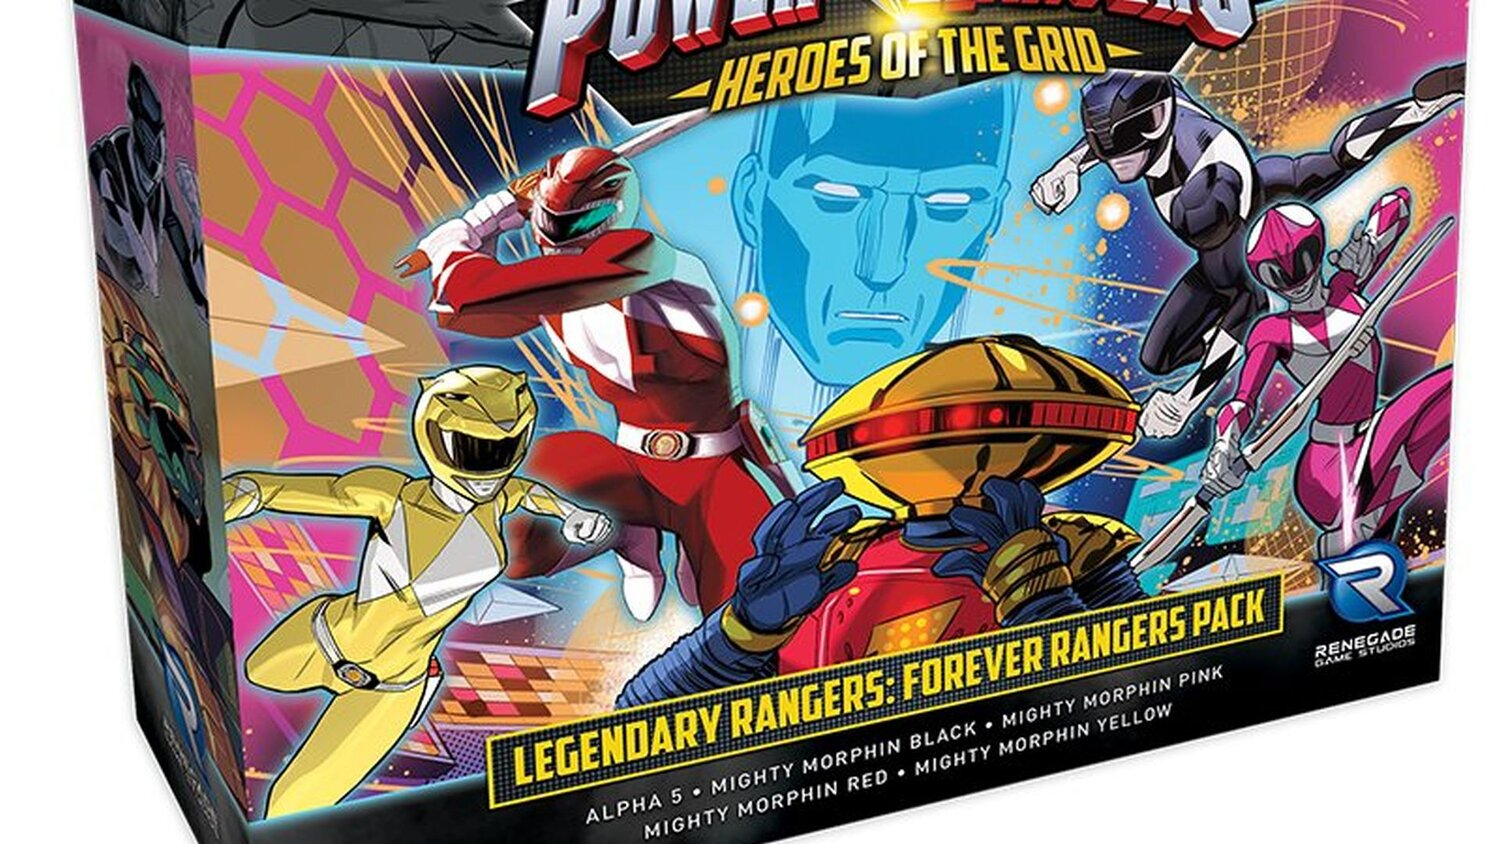 POWER RANGERS: HEROES OF THE GRID Reveals Details for a New Expansion